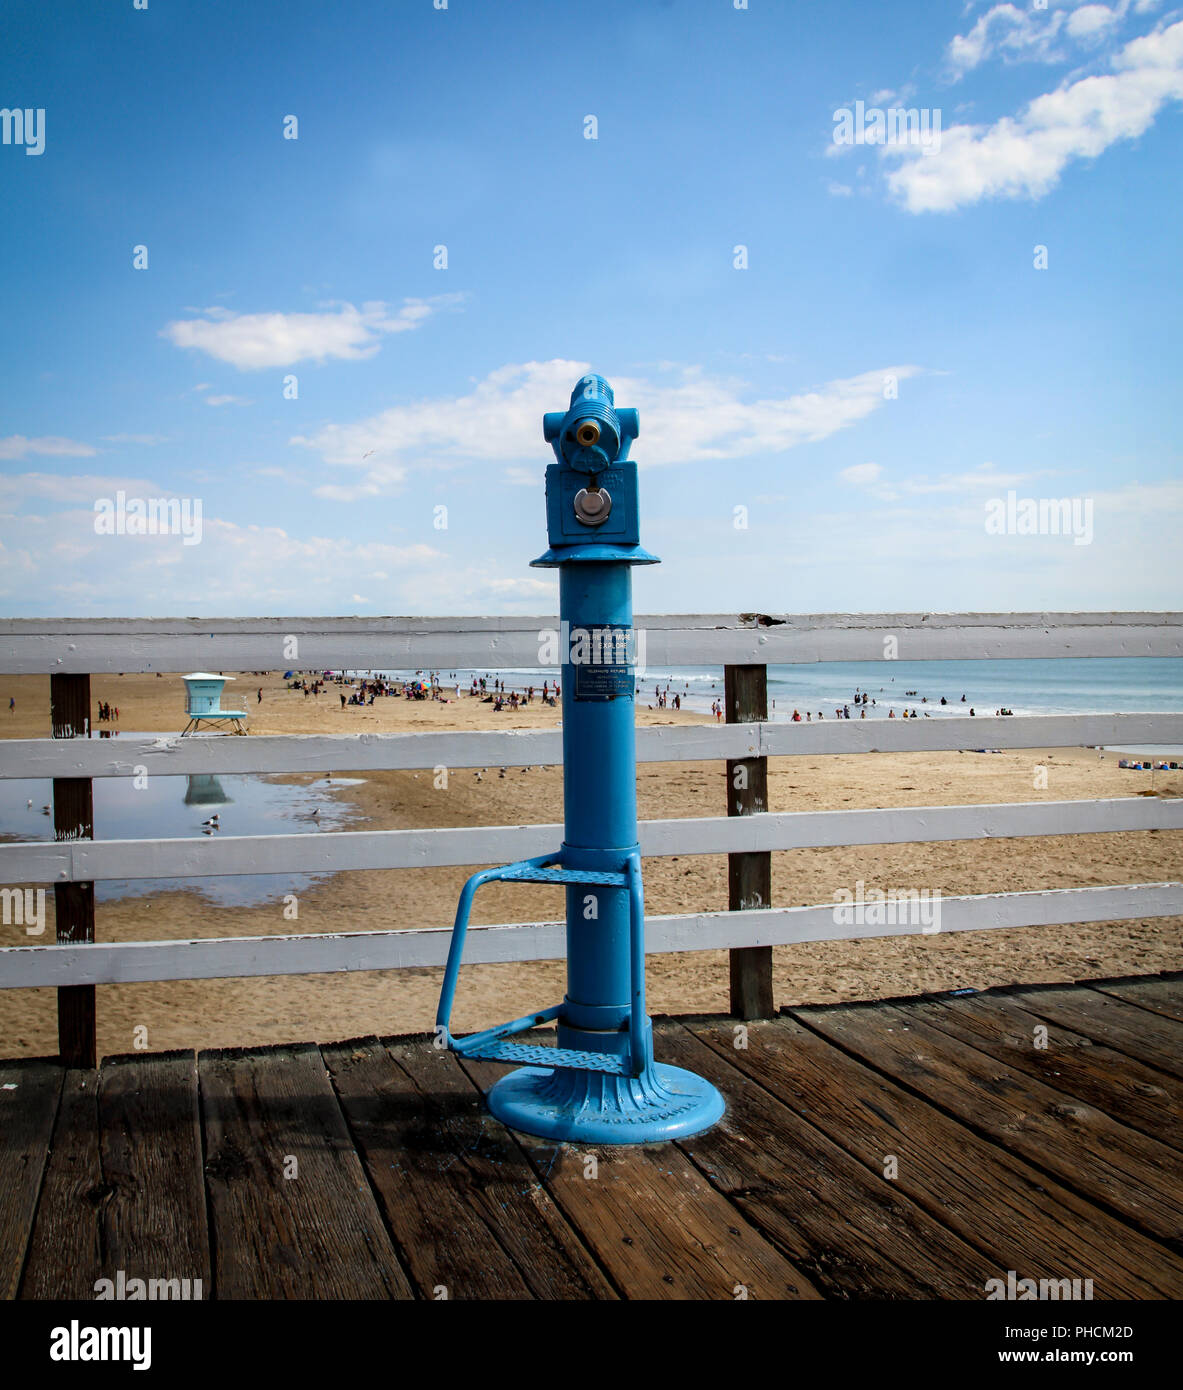 Telescope, Viewpoint glance observe - Stock Image